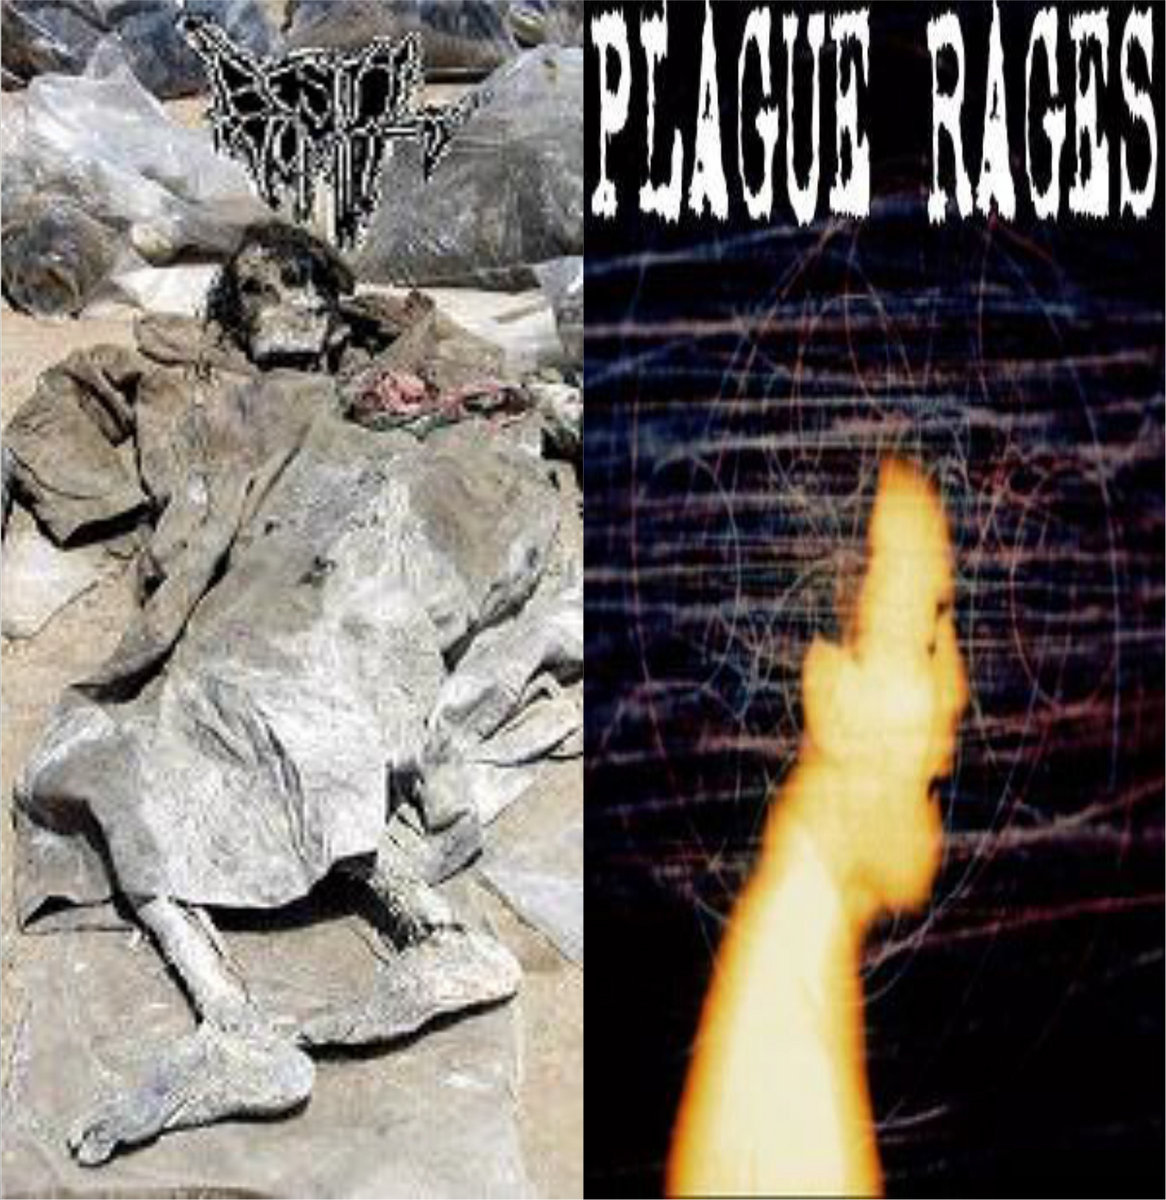 AT WAR WITH RAGE. from split cd w/ PLAGUE RAGES by from LO-FI RECORDS